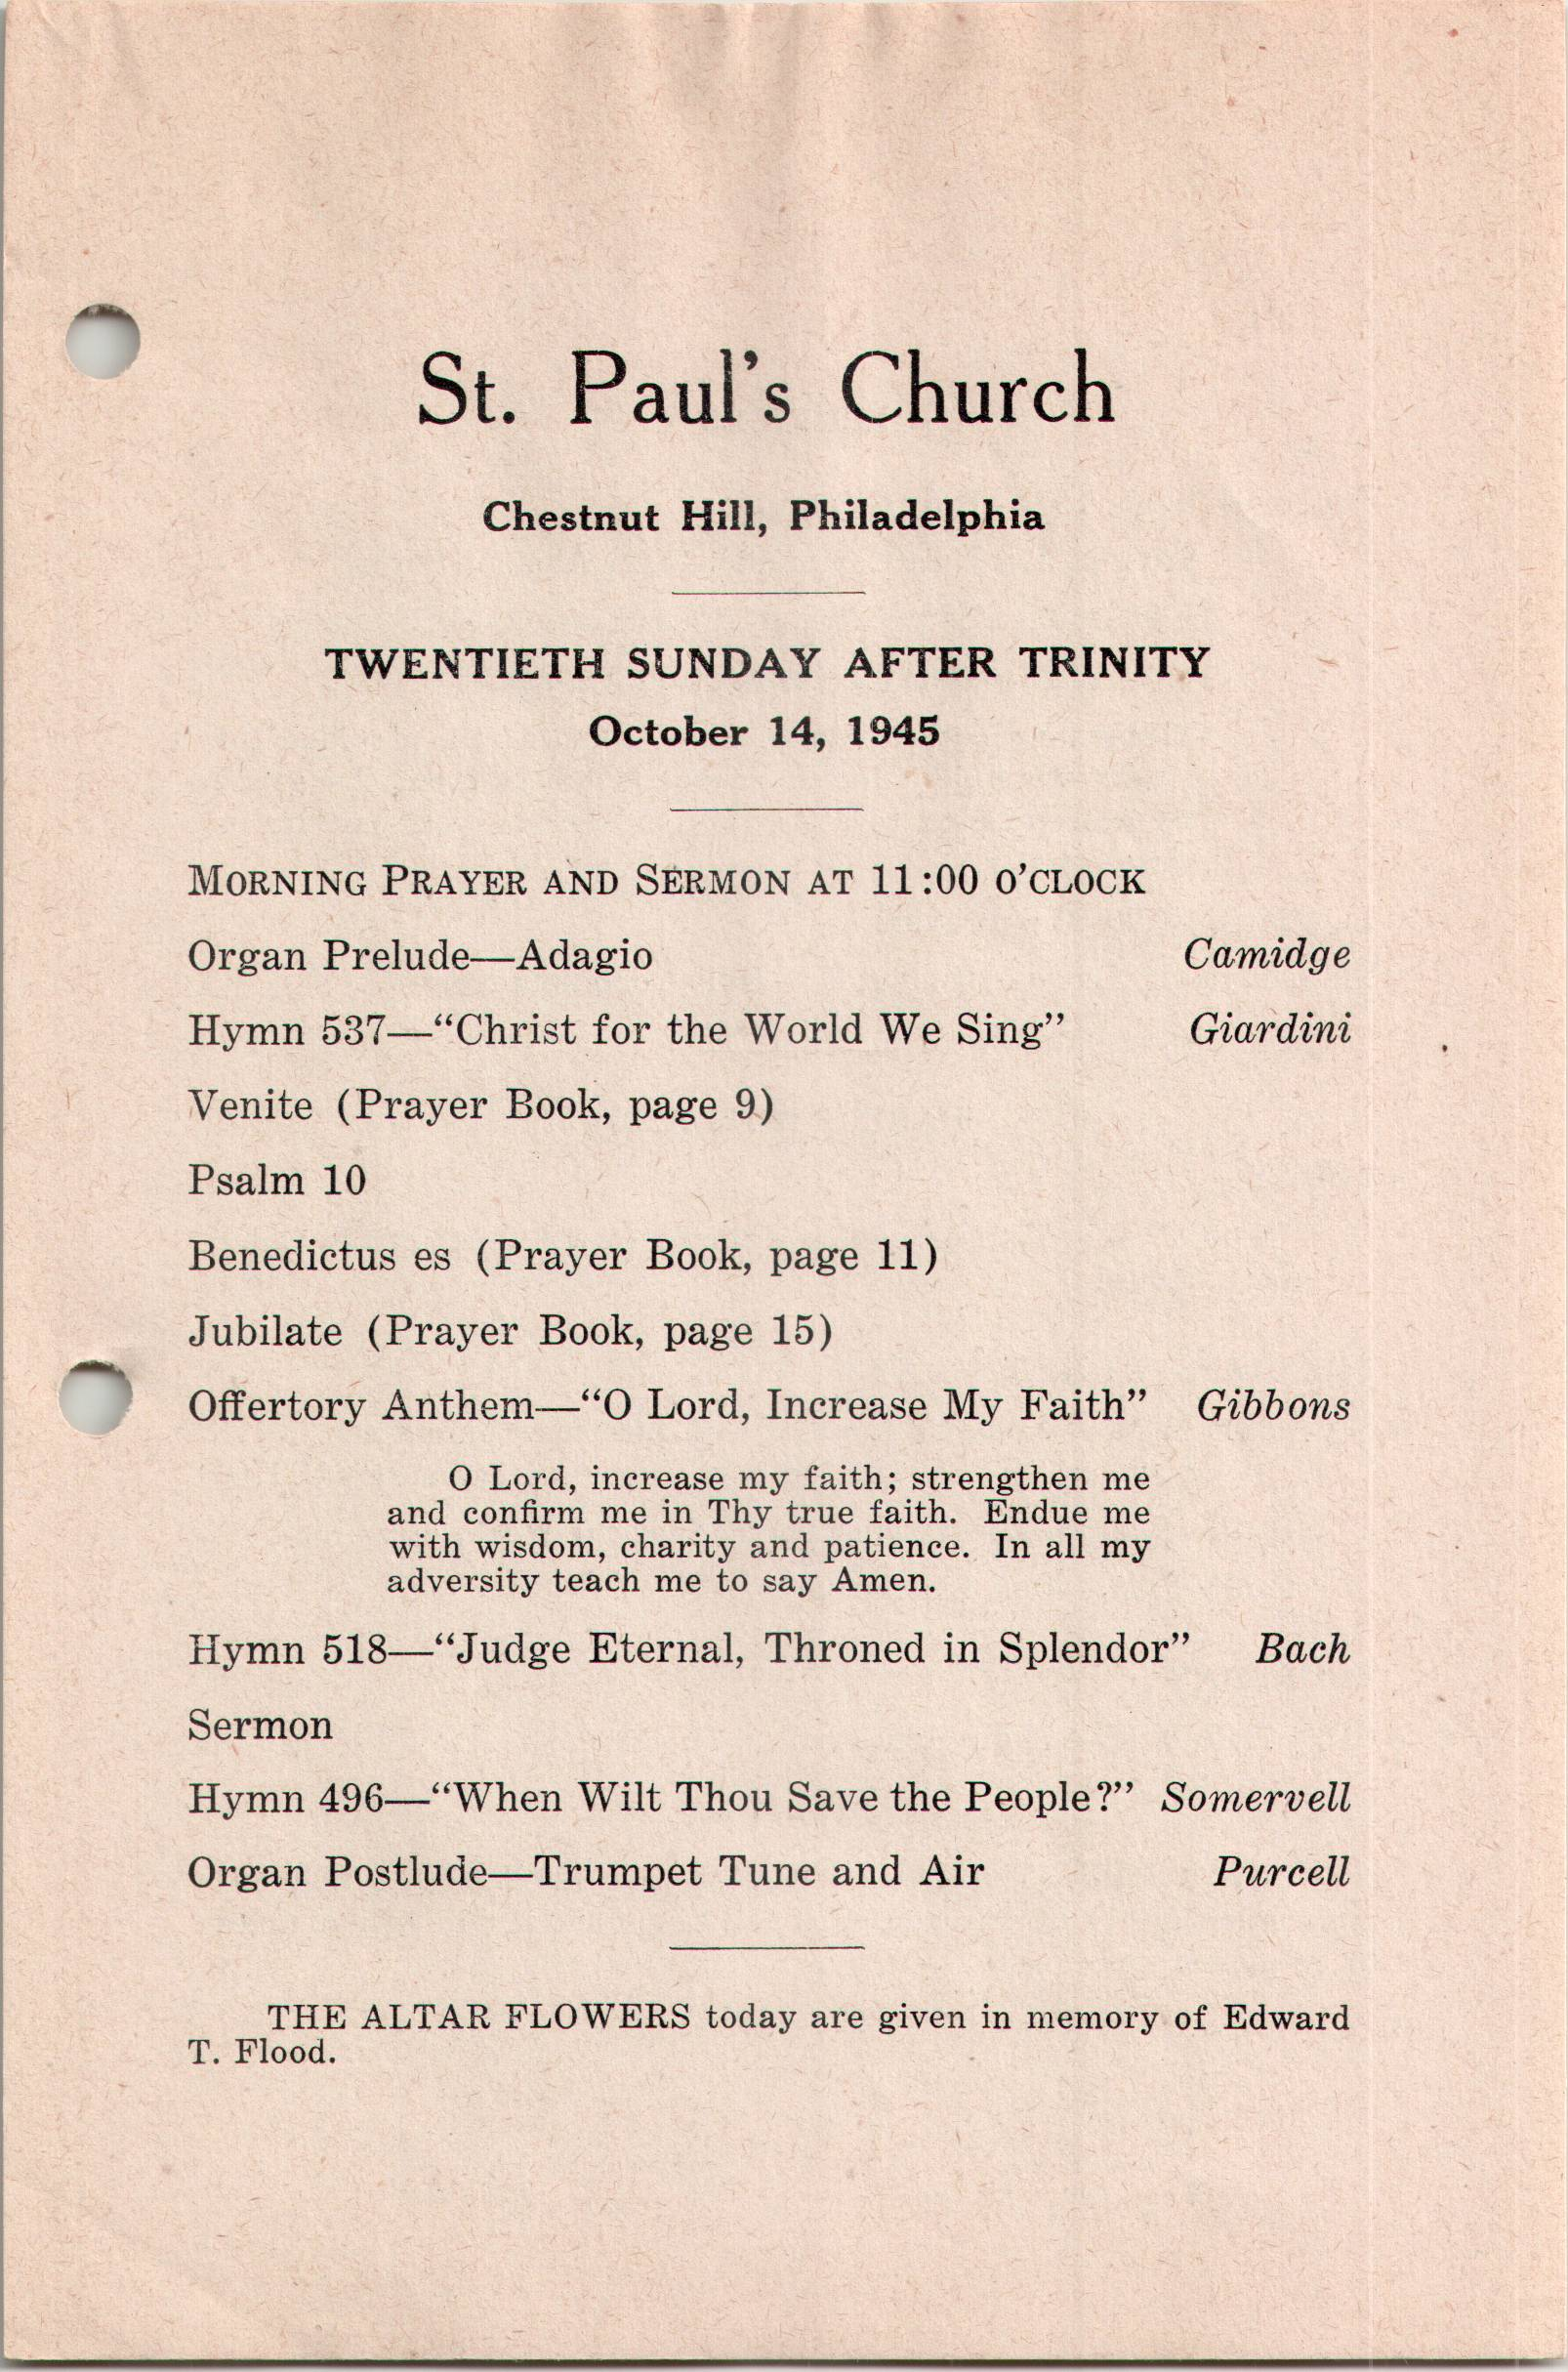 Service Leaflet for the Twentieth Sunday after Trinity at St  Paul's